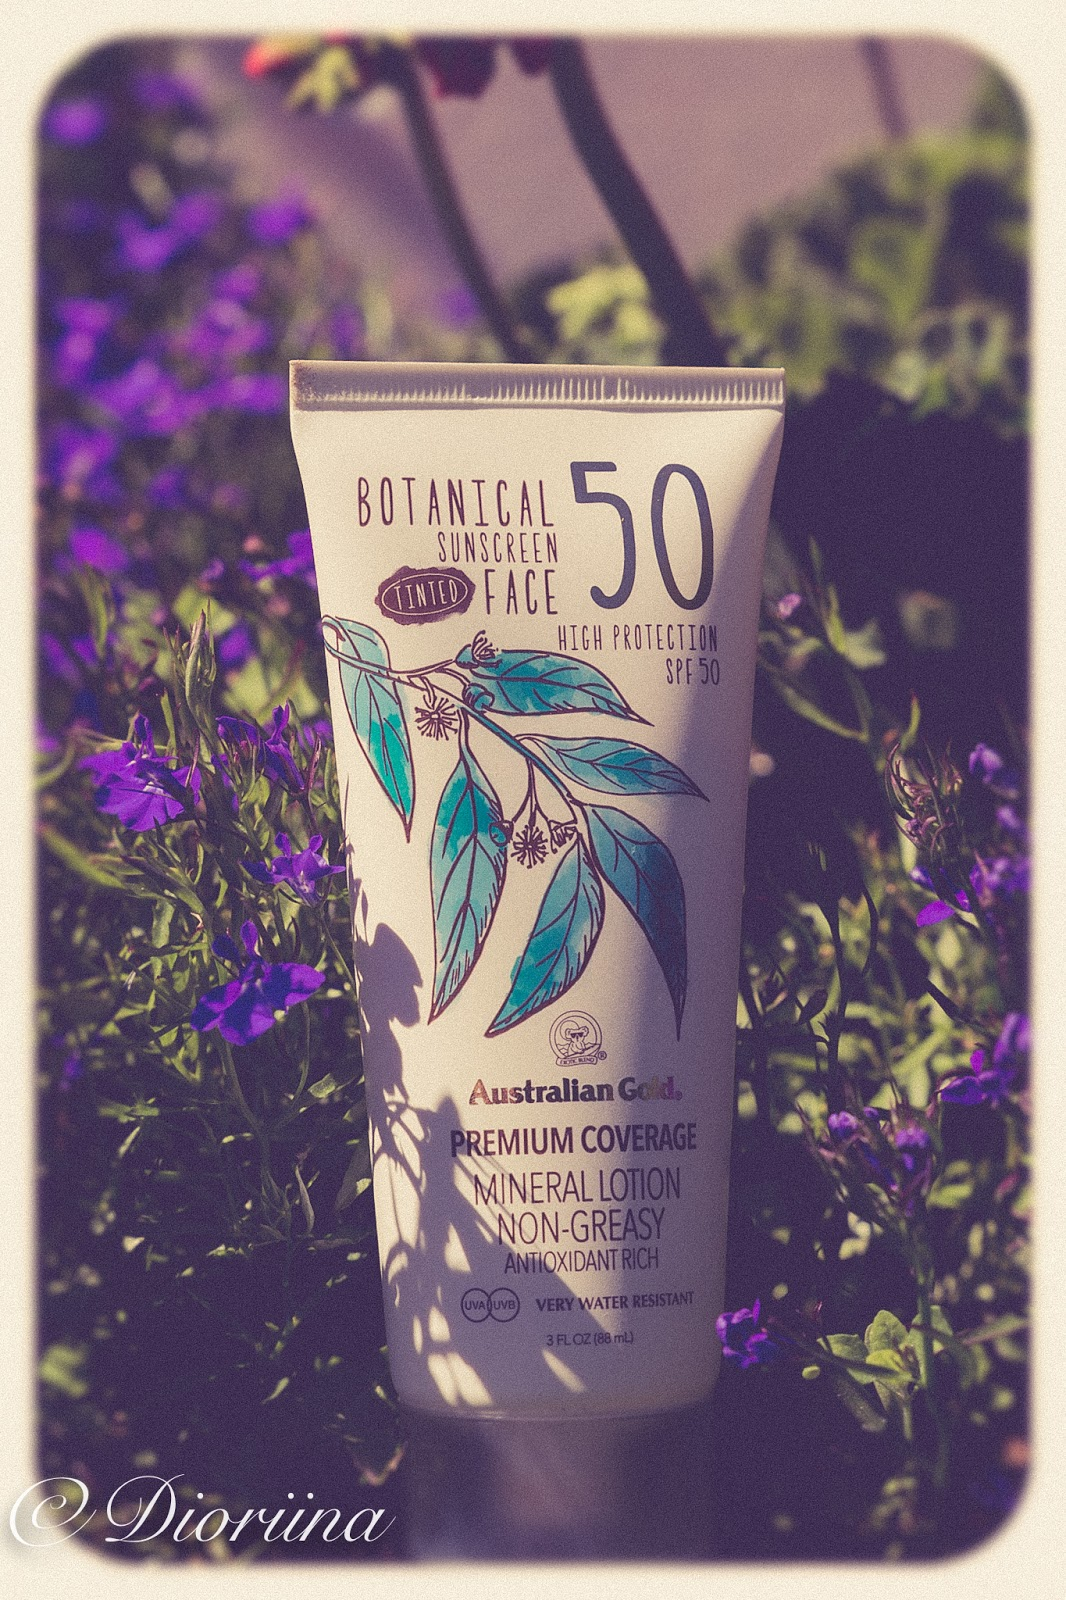 Botanical tinted face sunscreen